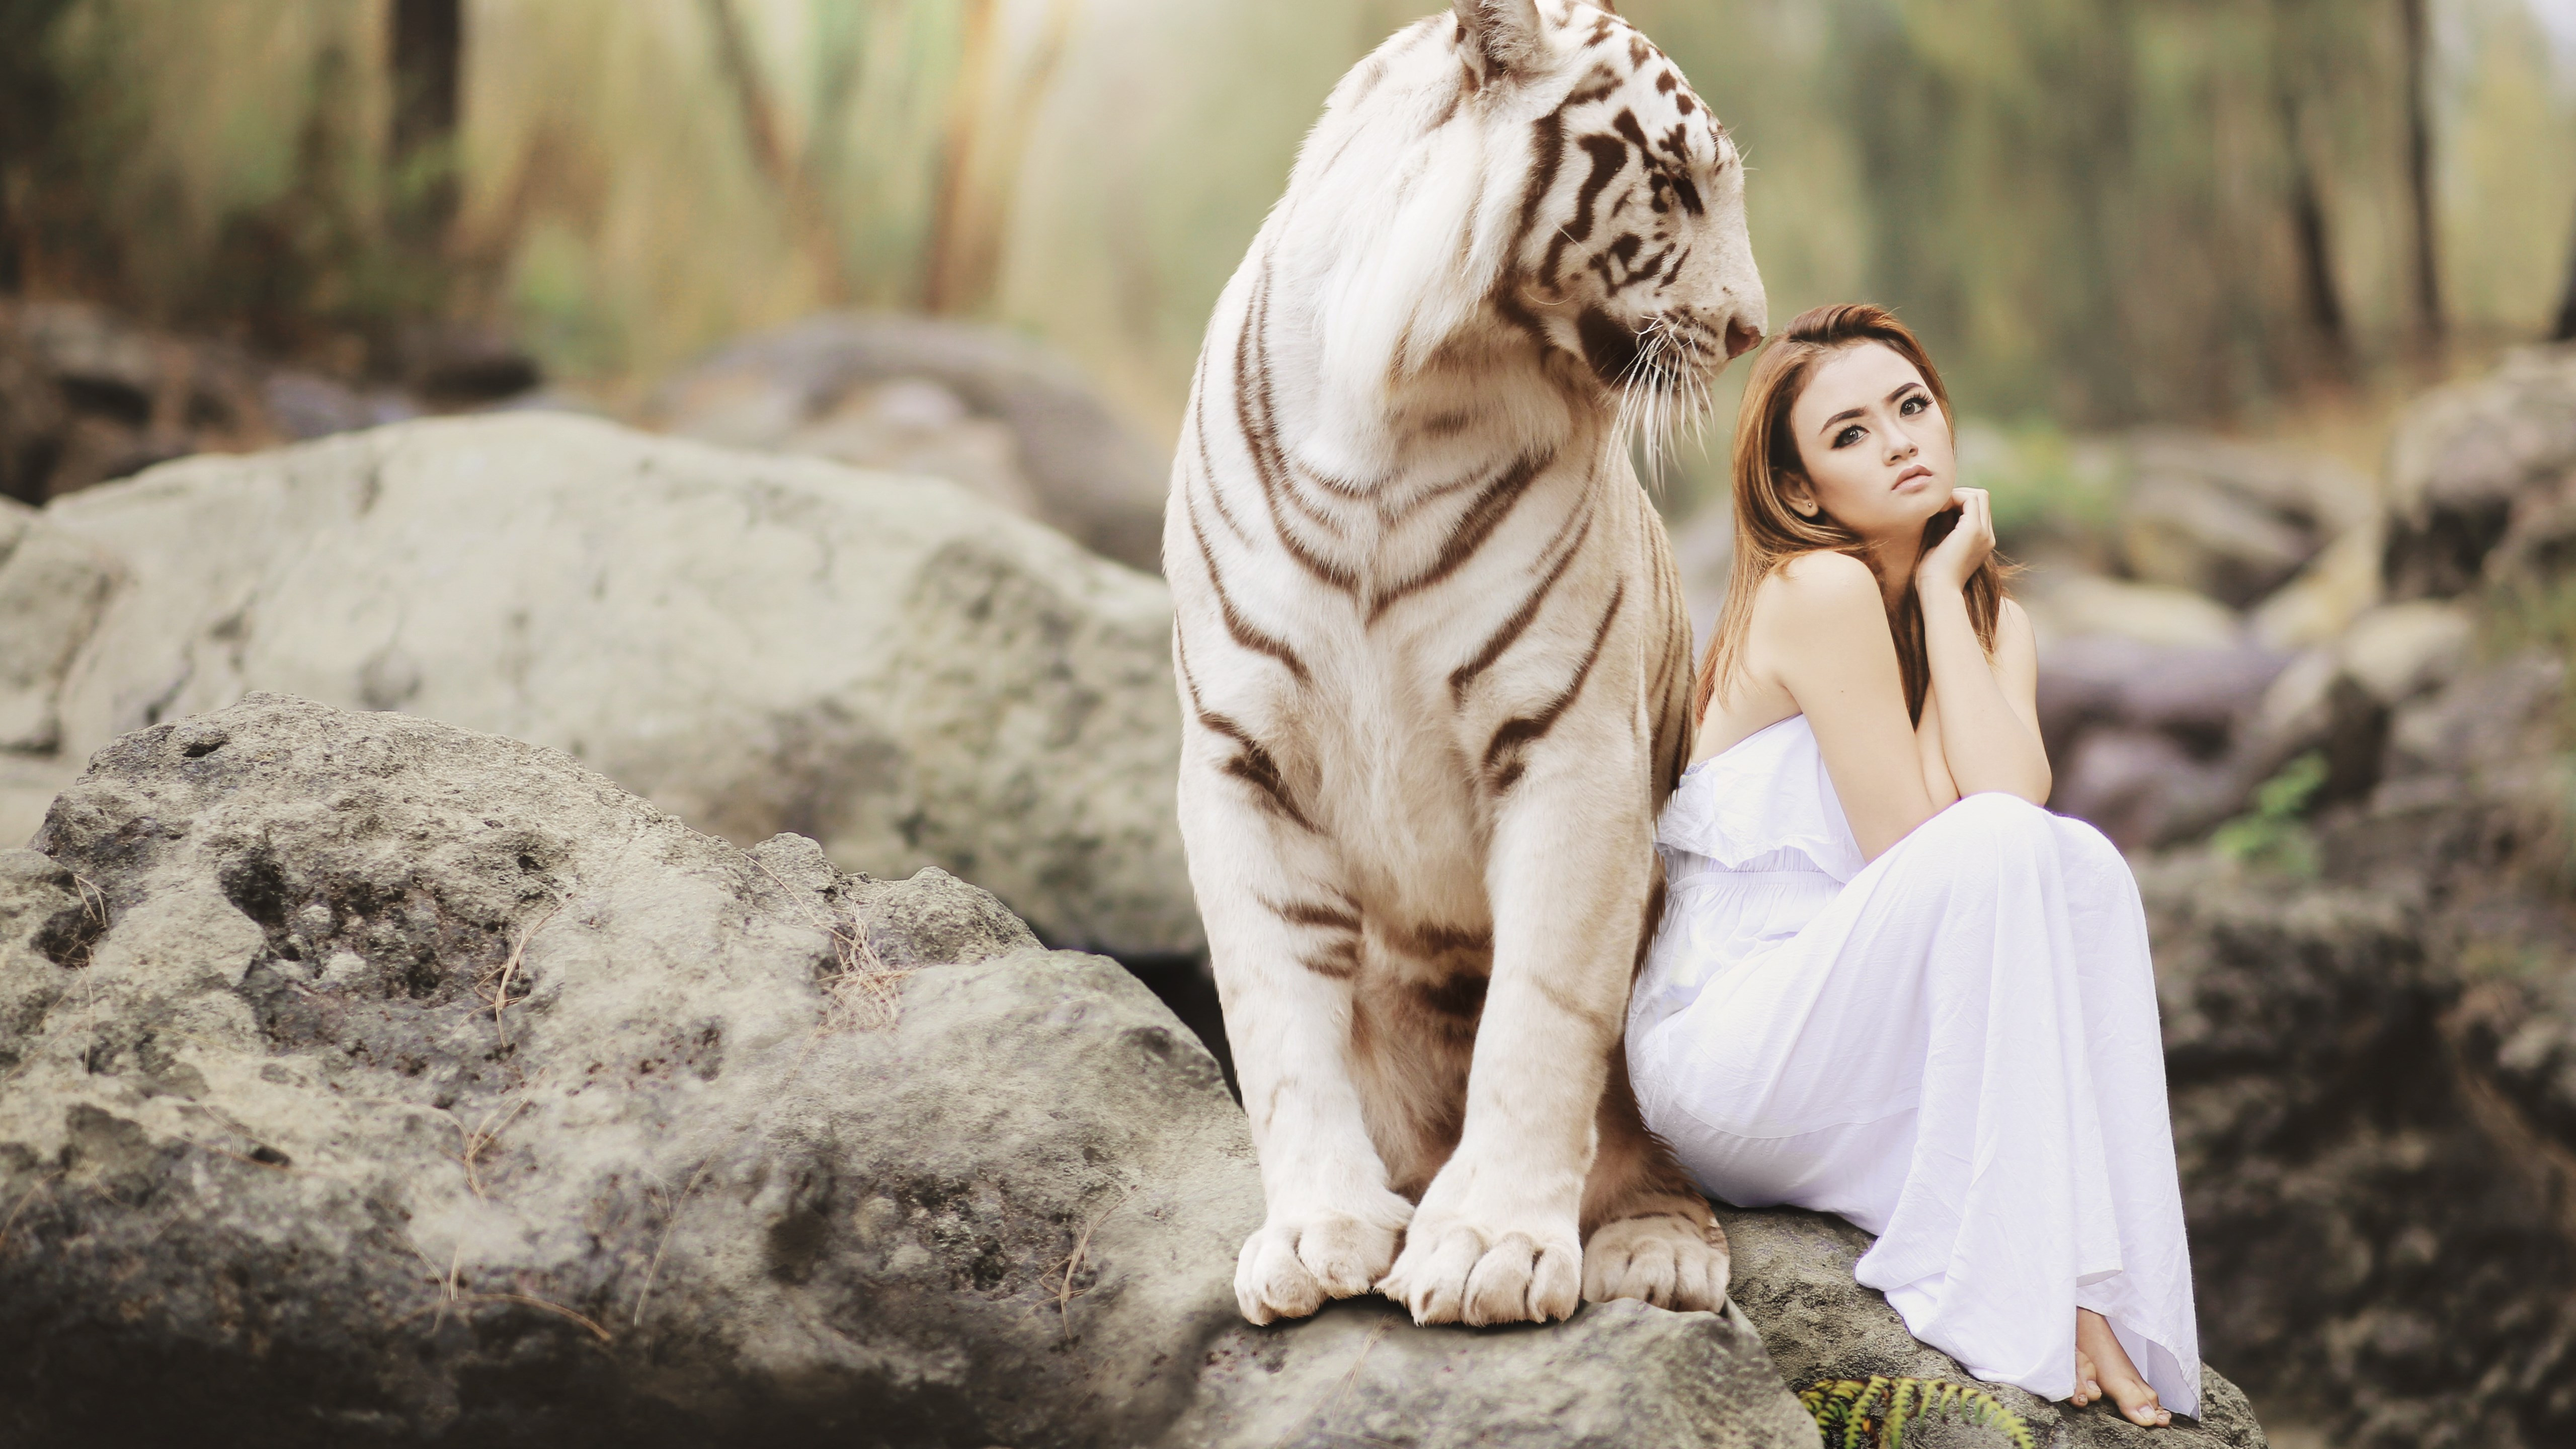 Bengal tiger and a beautiful girl wallpaper 5120x2880